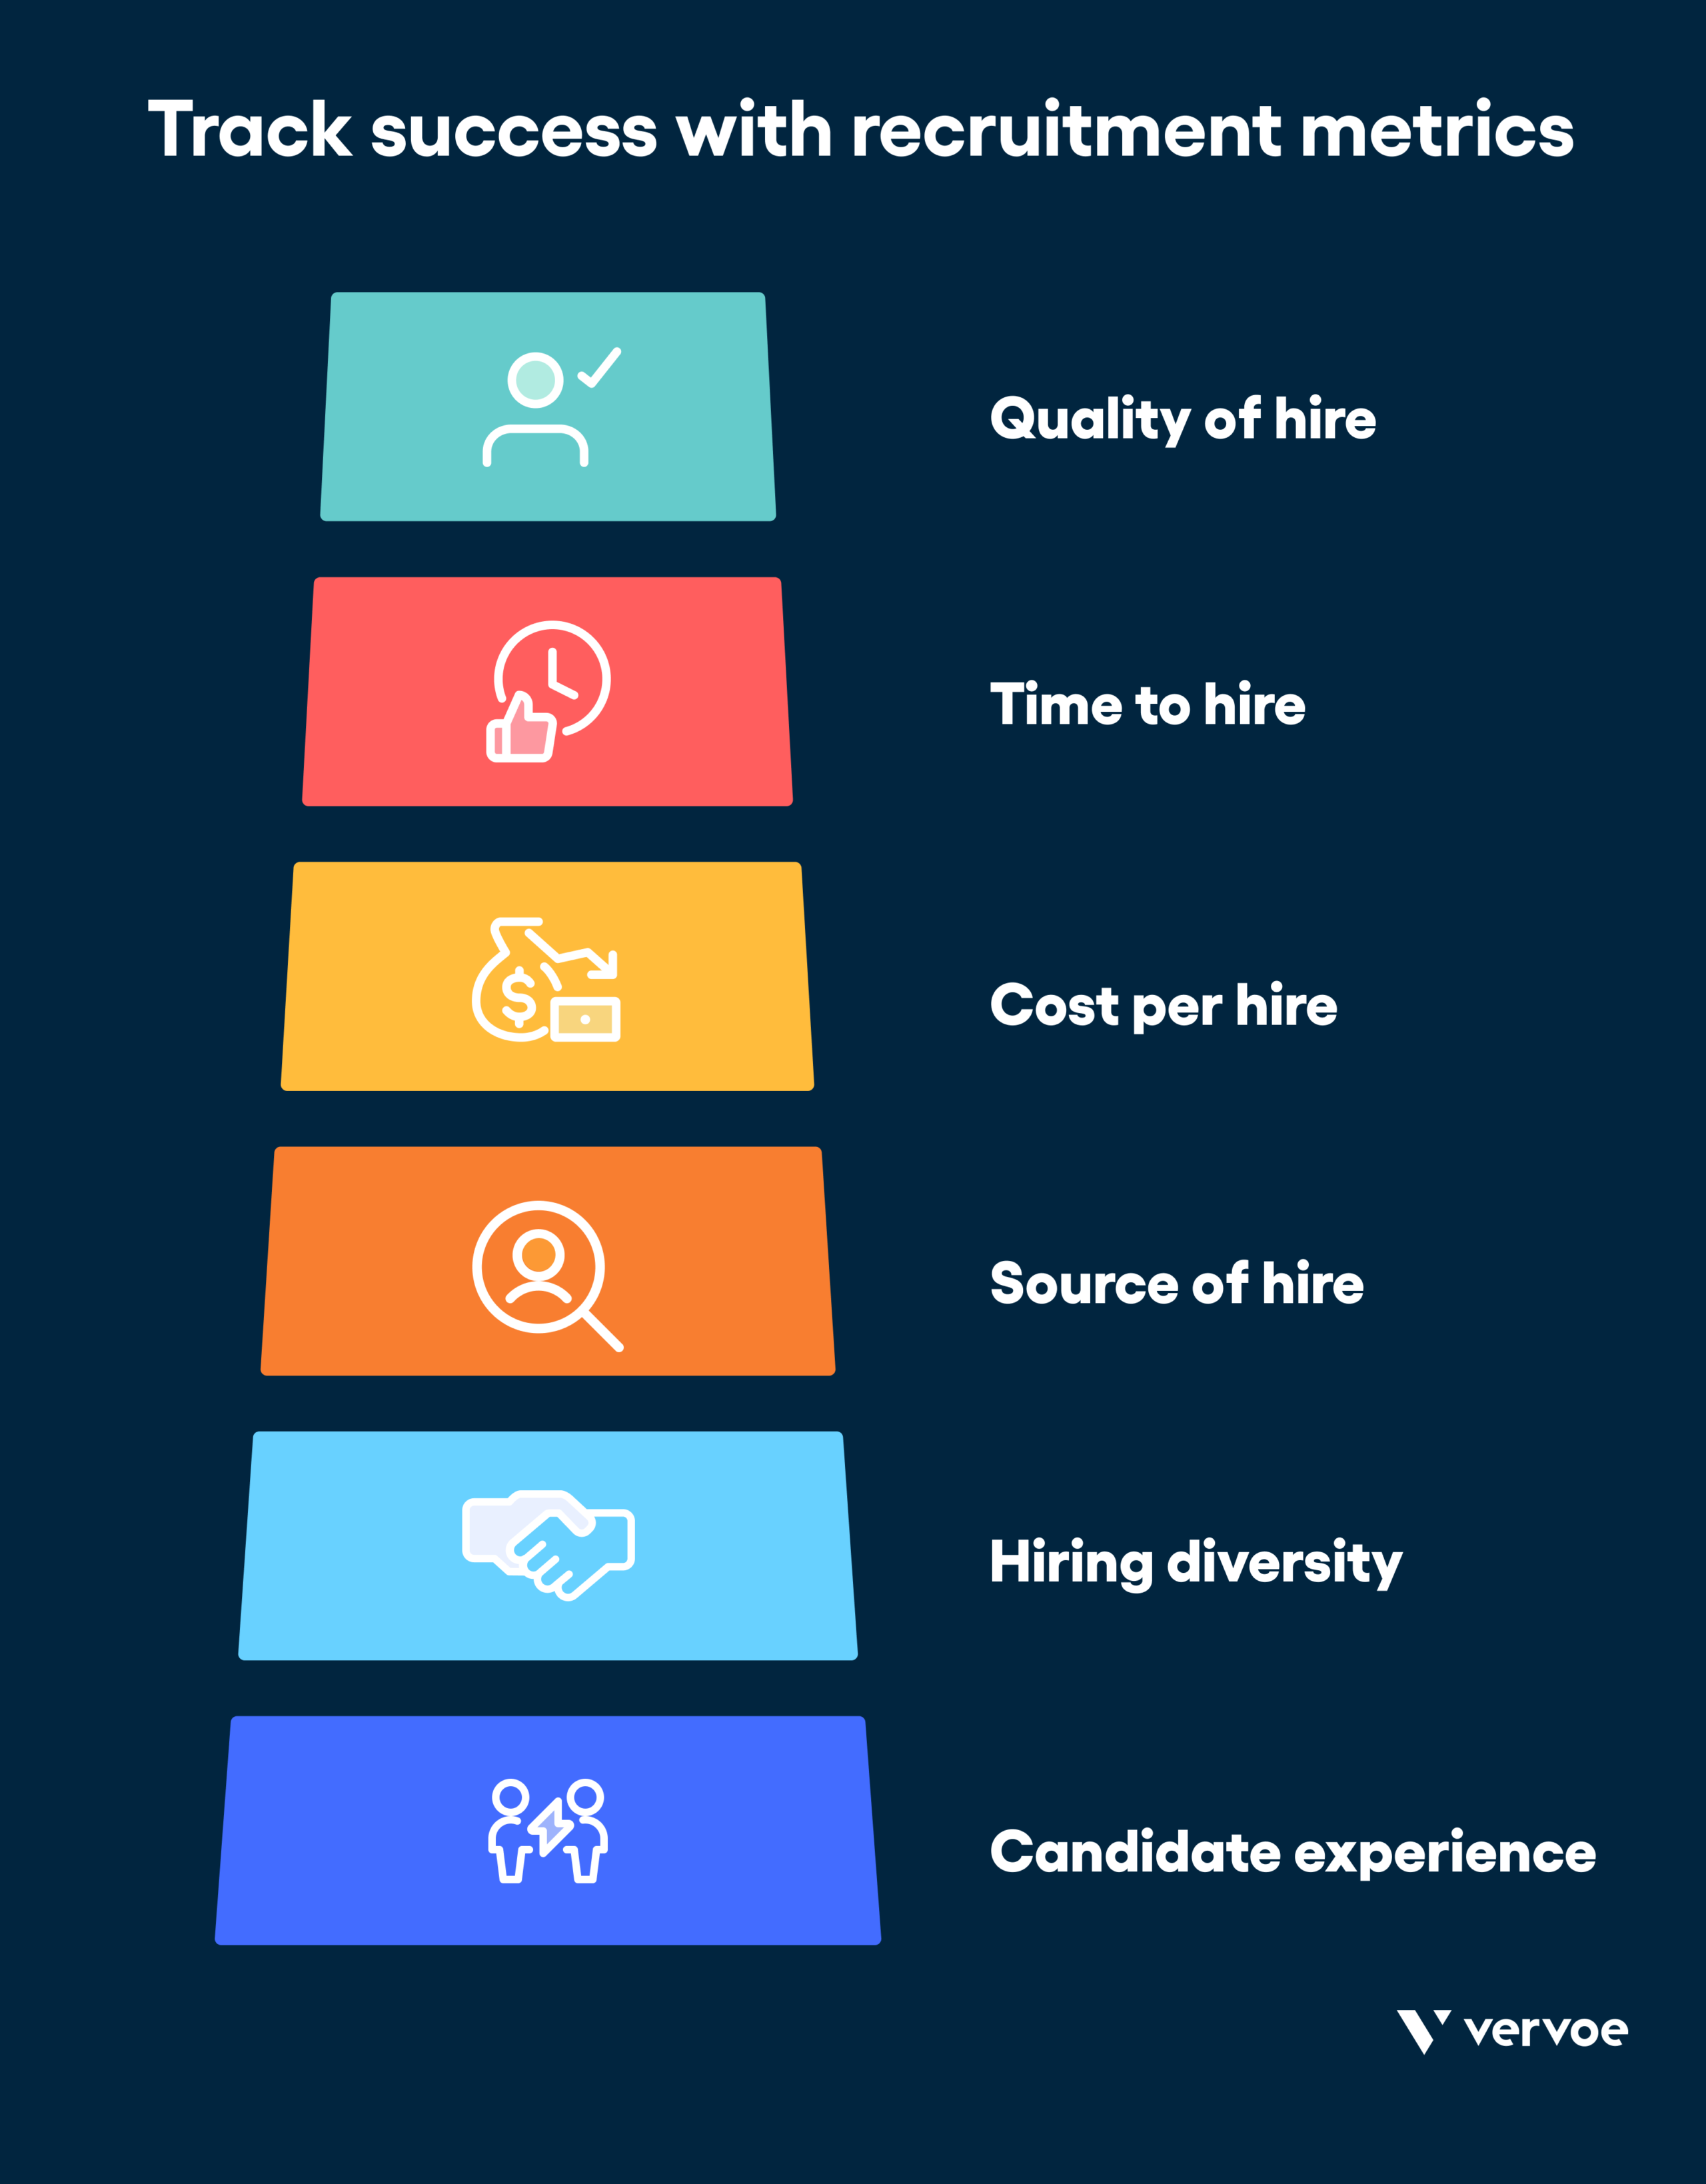 Infographic showing how to track success using recruitment metrics